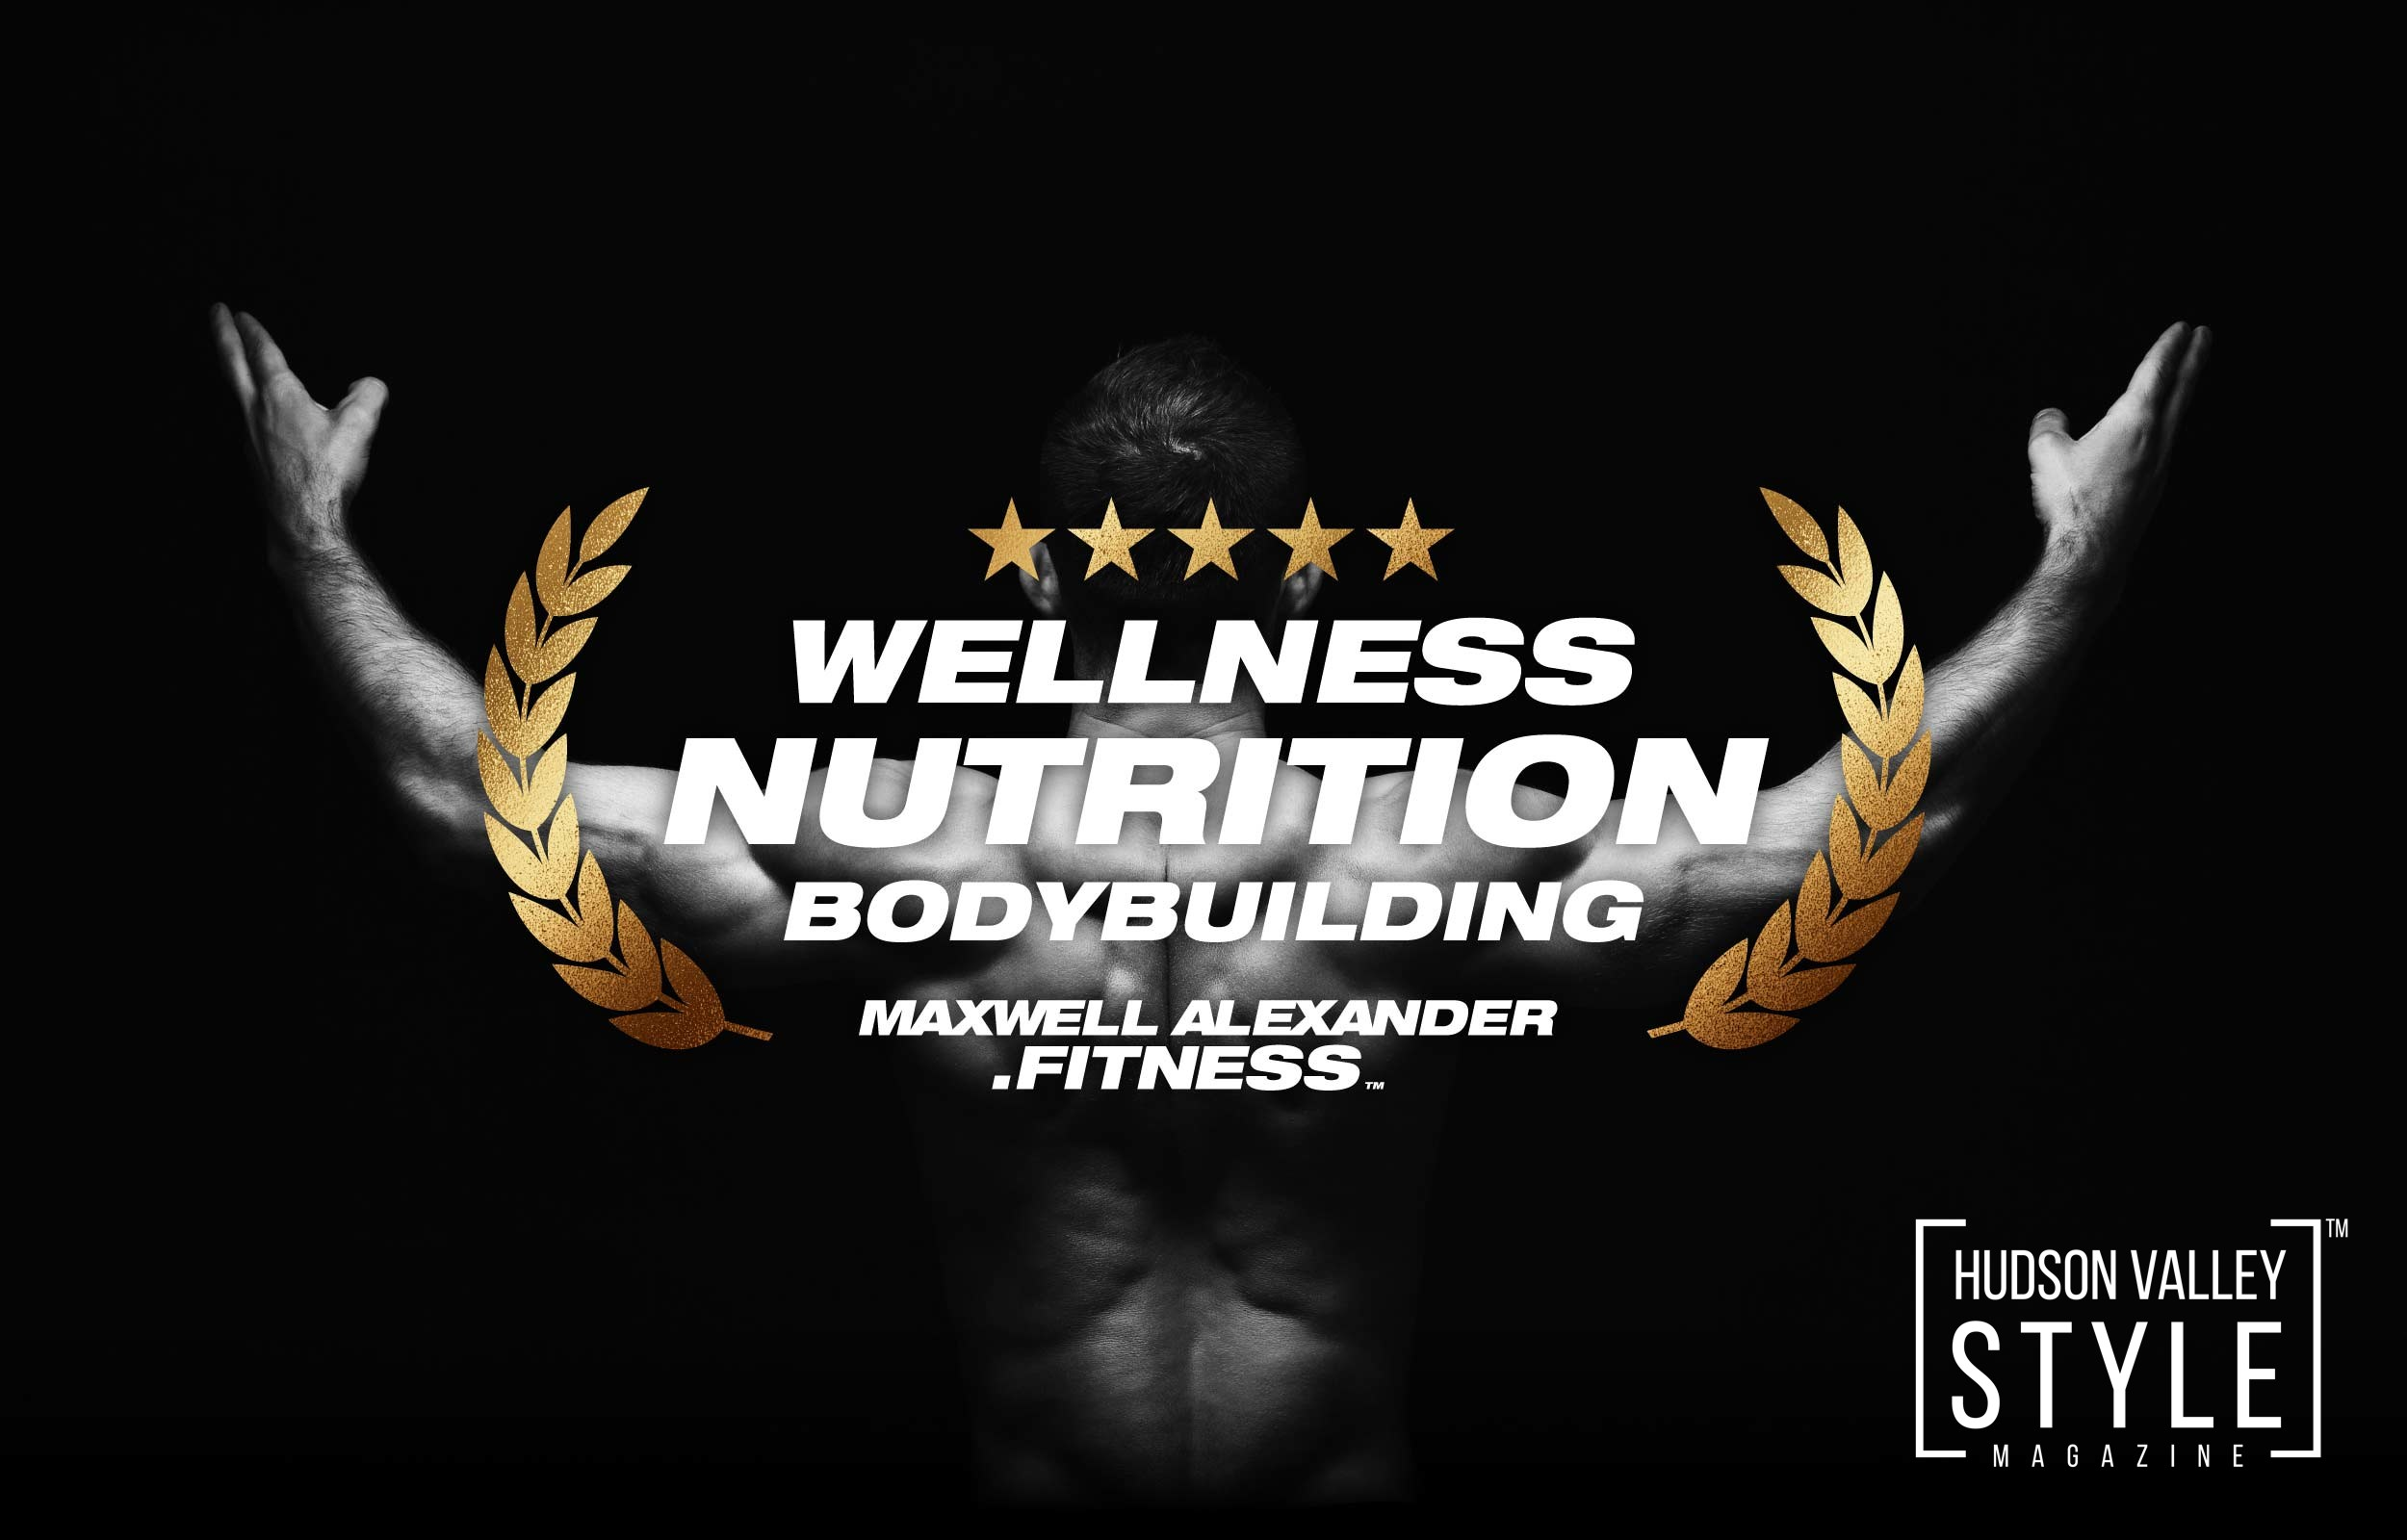 Maxwell Alexander - Online Fitness, Wellness, Nutrition and Bodybuilding Coaching